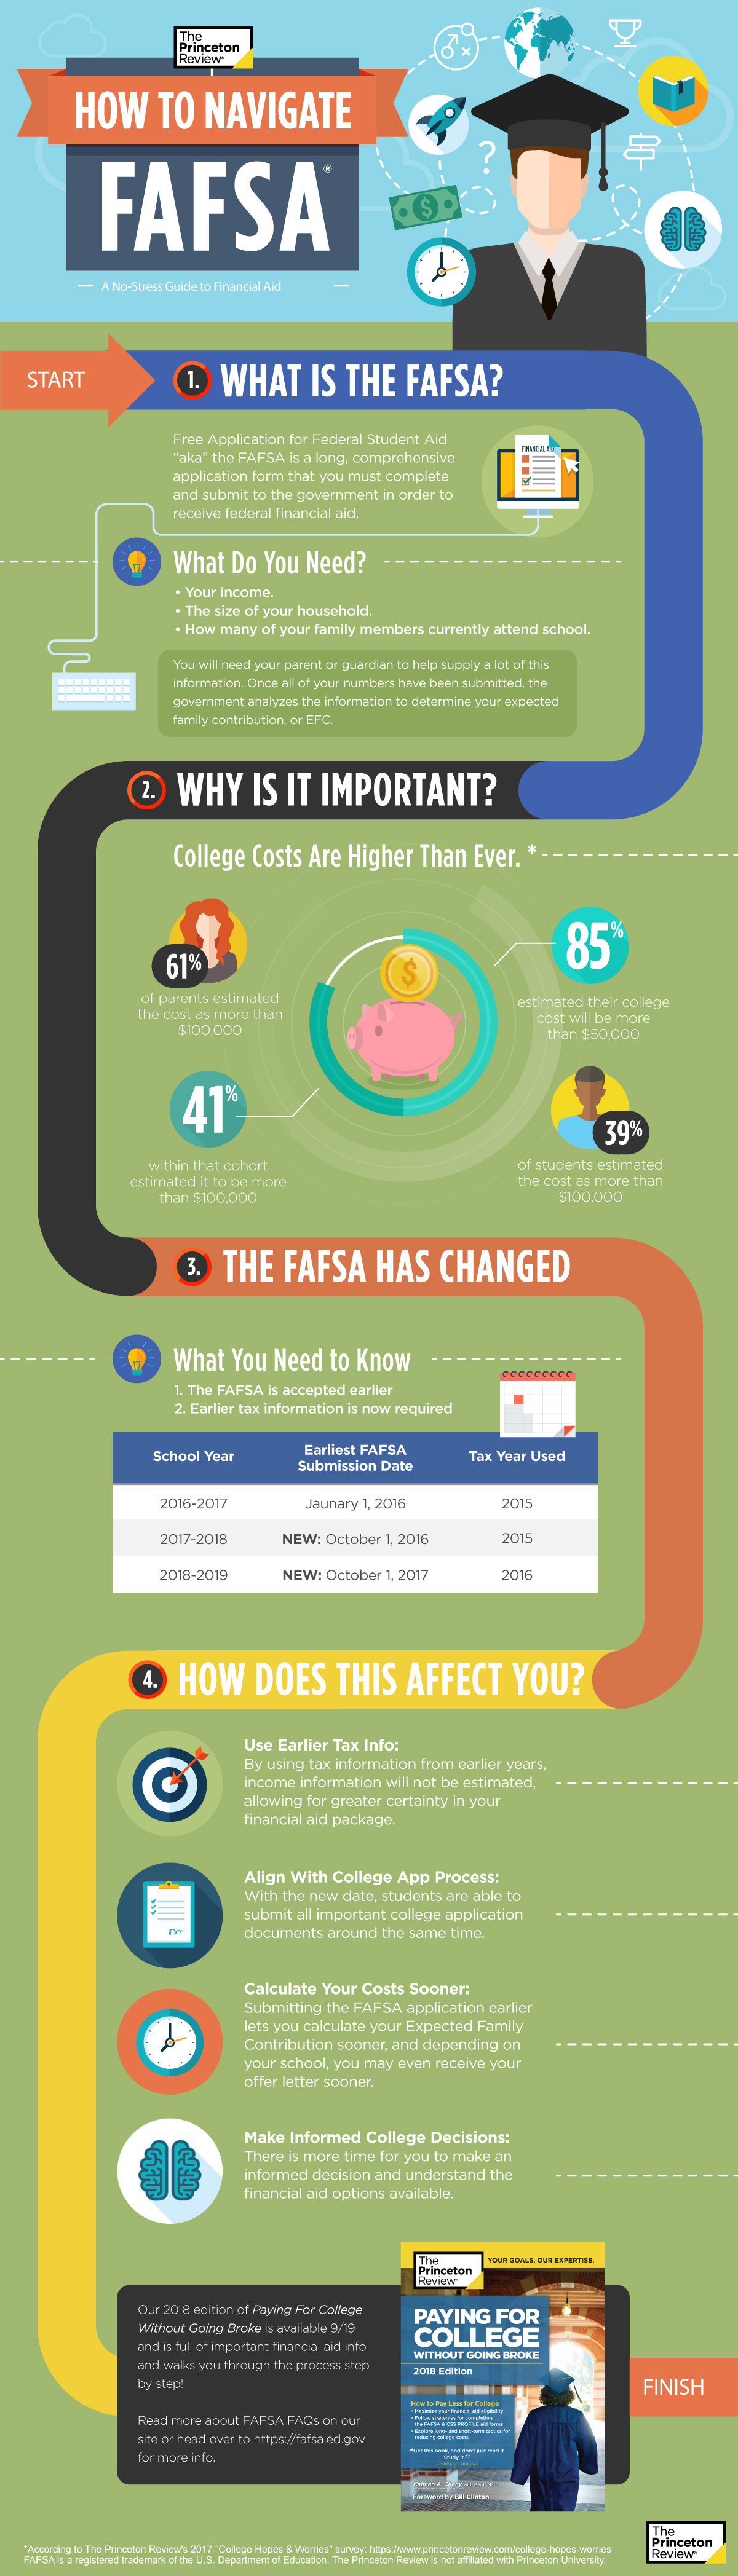 How To Navigate the FAFSA Infographic